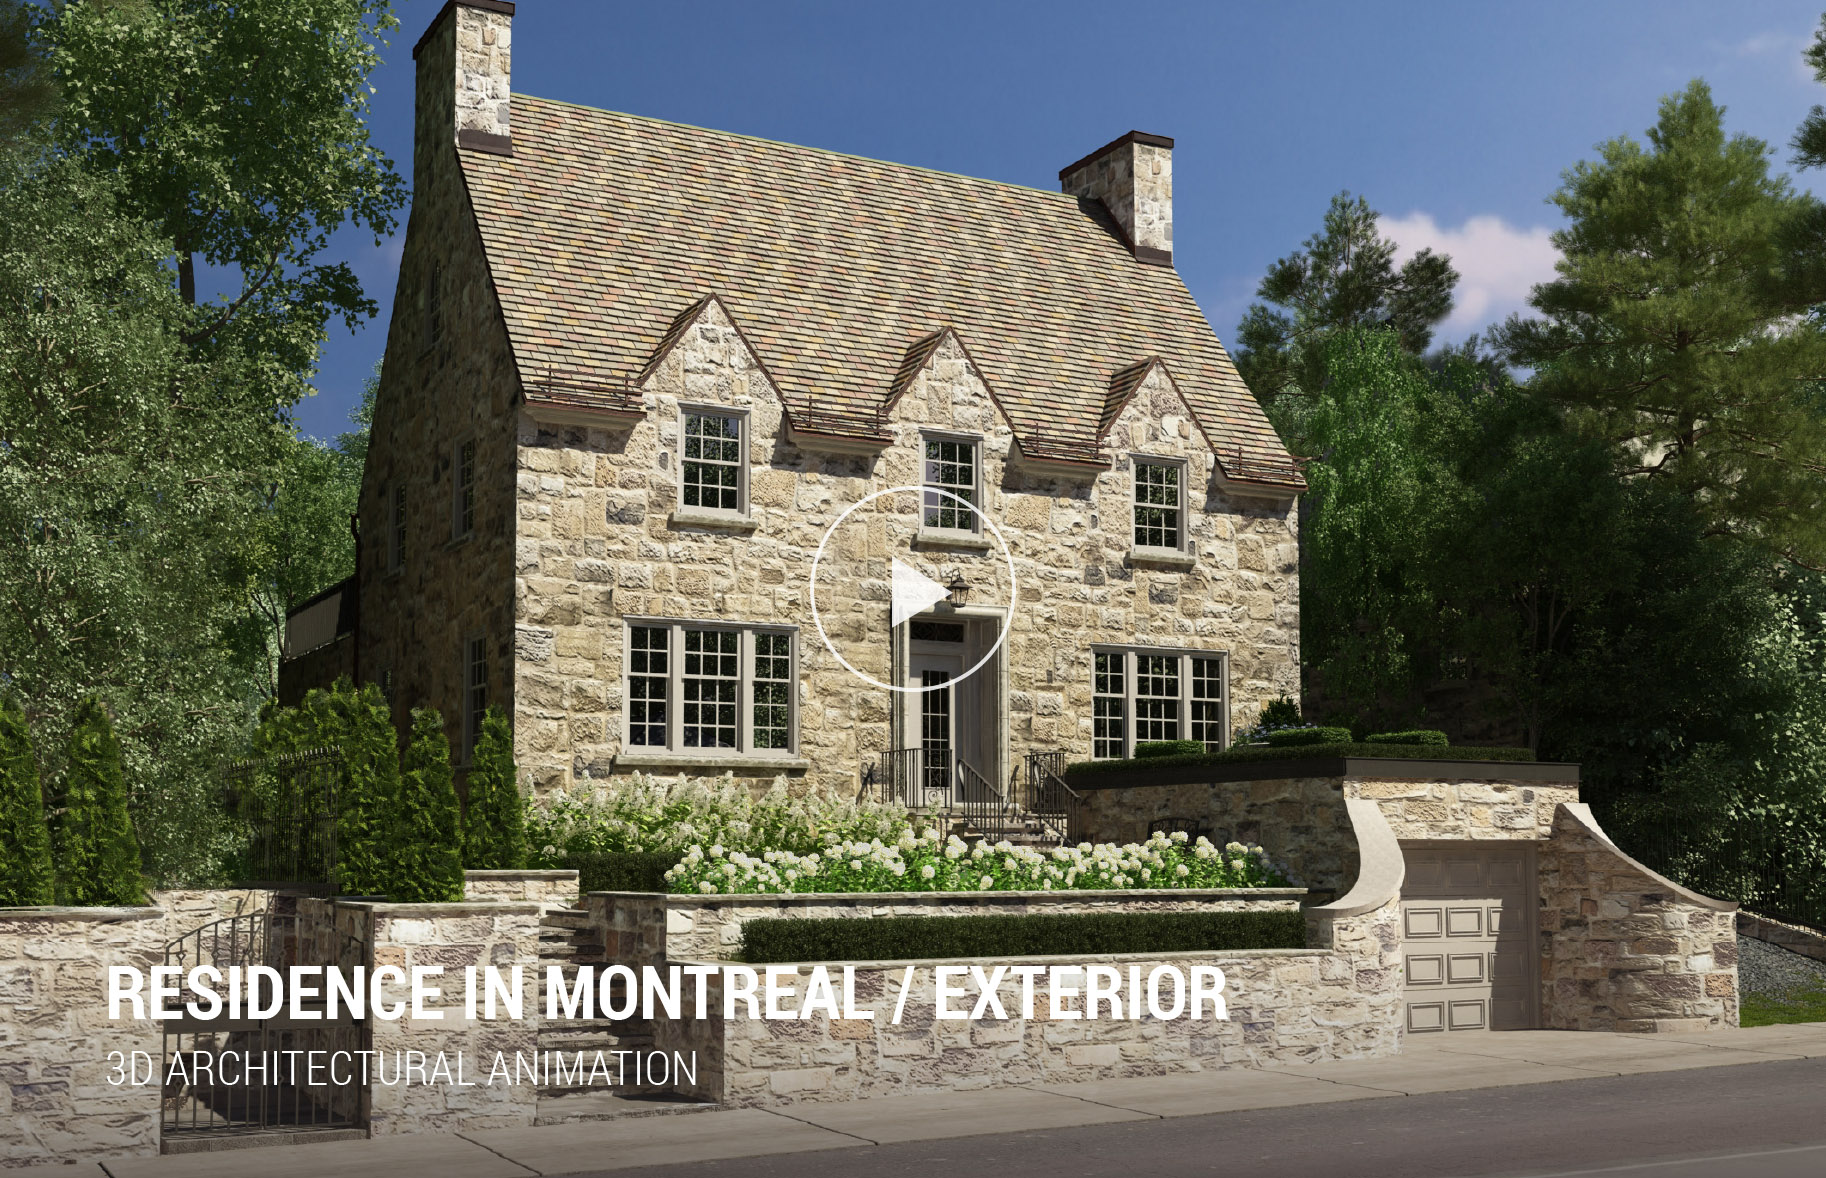 Schema Dimitra Chrona designer, creative director, architectural, 3D visualization, 3D Rendering, branding websites, digital, graphic design, interior design, real estate, luxury property, staging, museum, virtual, art, brochures, exhibitions, logotype, logo, Canada Quebec Montreal Athens Greece schema design residence montreal exterior video large.jpg